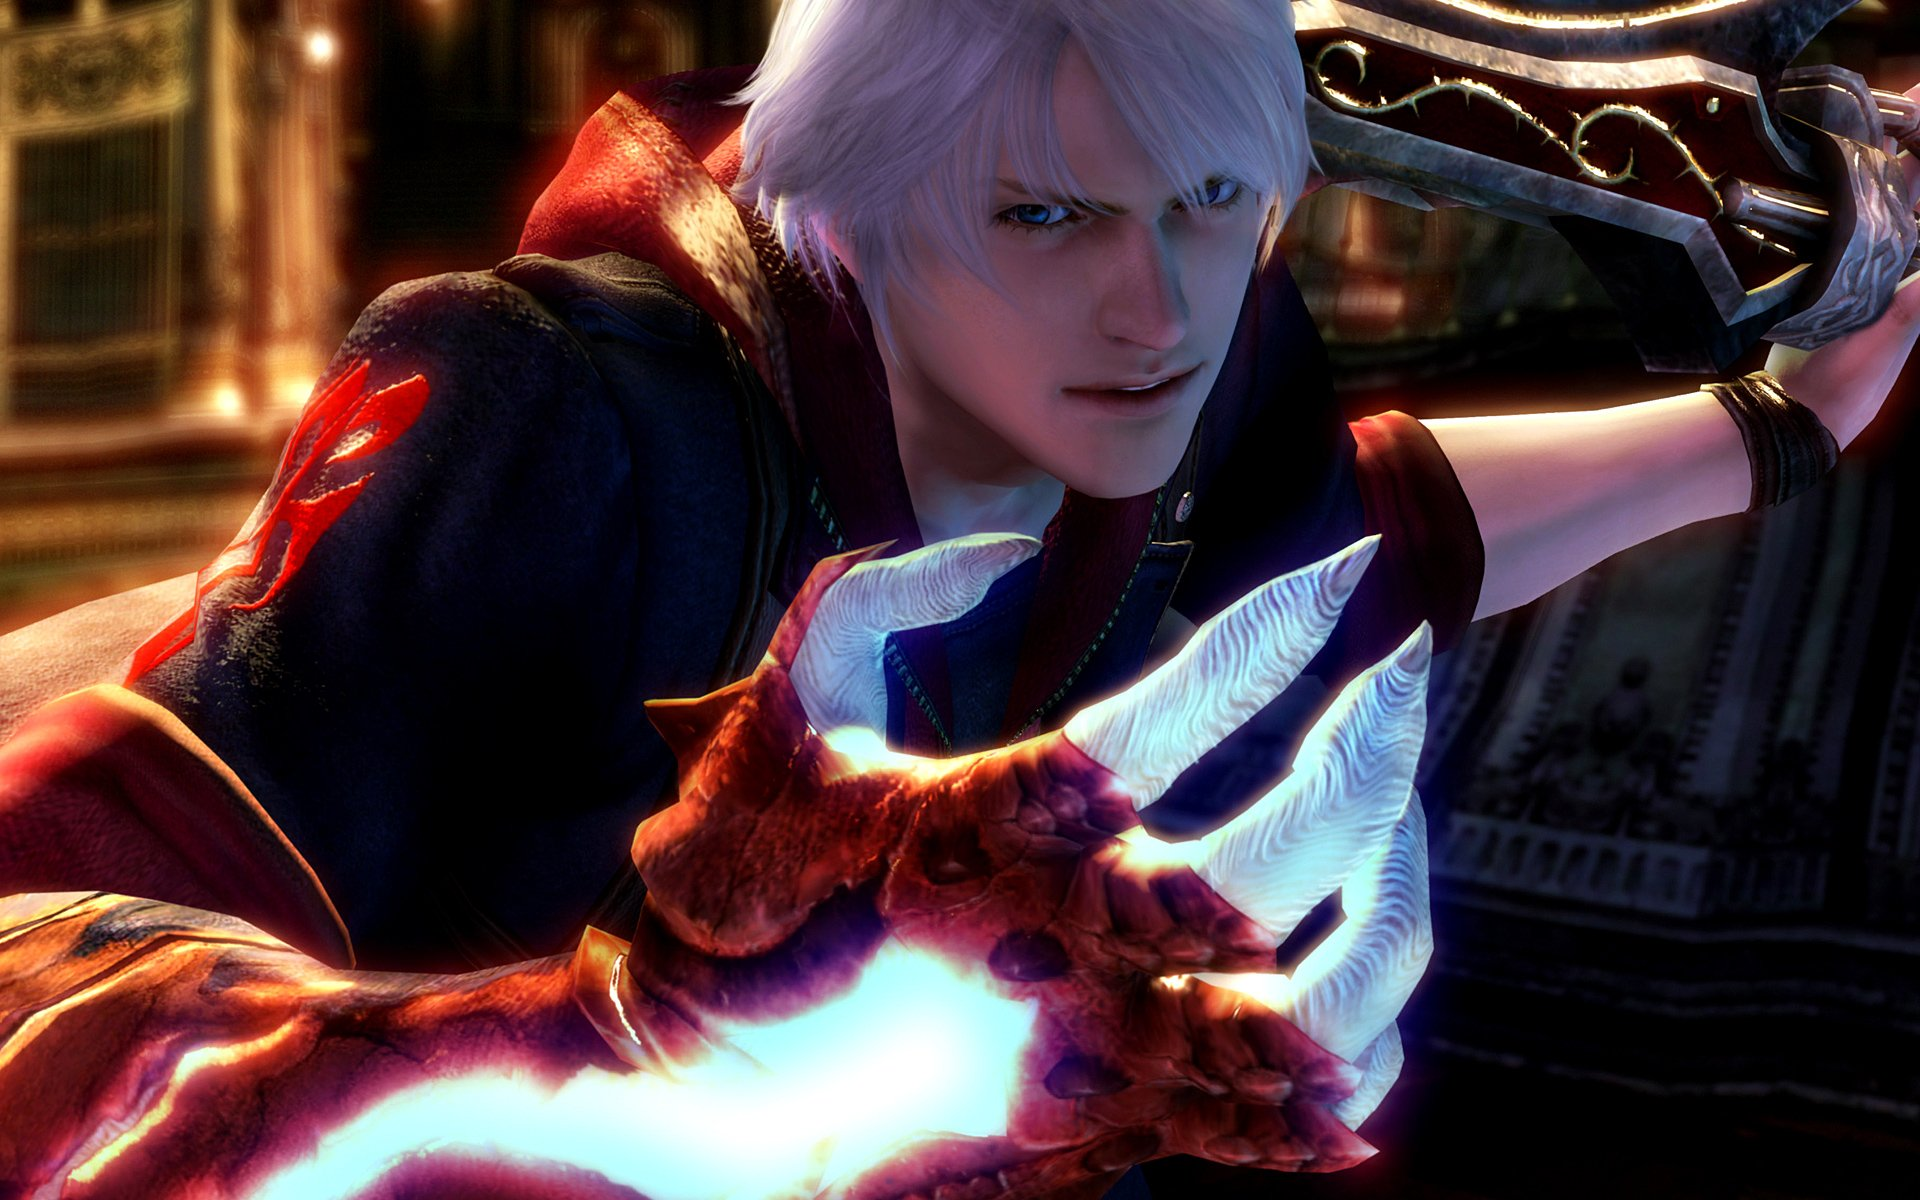 87 Nero Devil May Cry Fondos De Pantalla Hd Fondos De